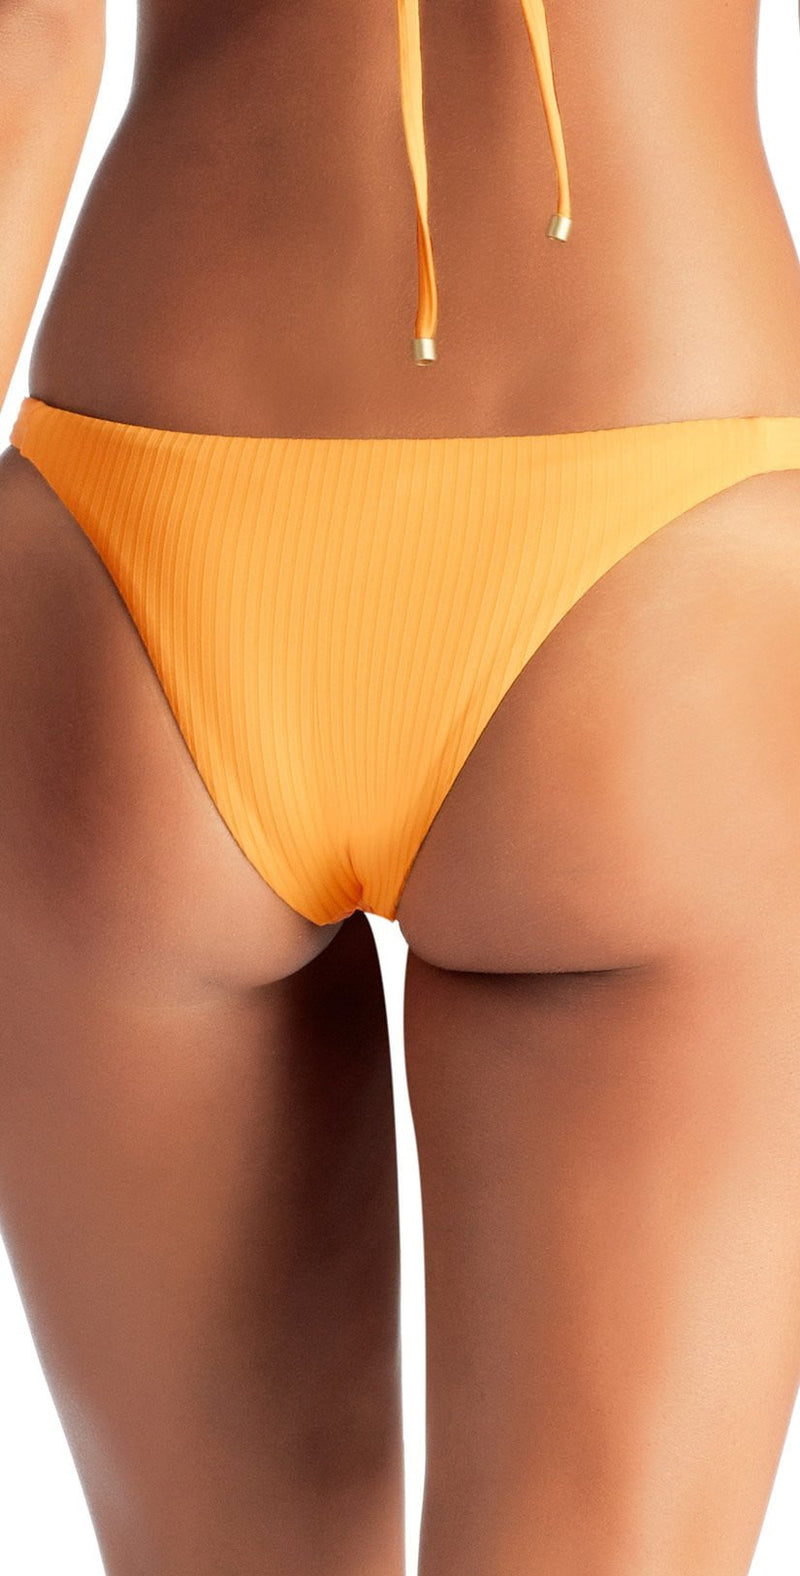 Vitamin A Carmen EcoRib Bikini Bottom in Sunflower 84B SRB: